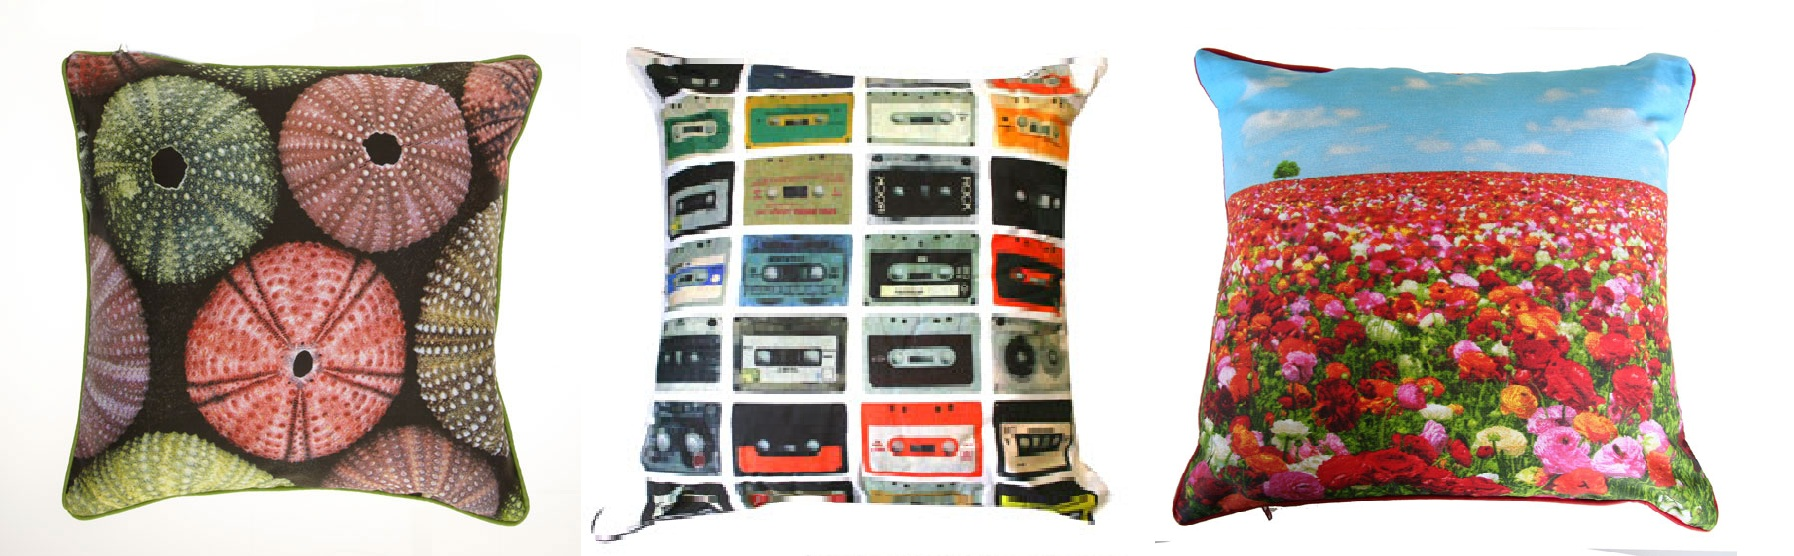 Cheap cushions the treasure hunter well designed for Cheap quirky homeware